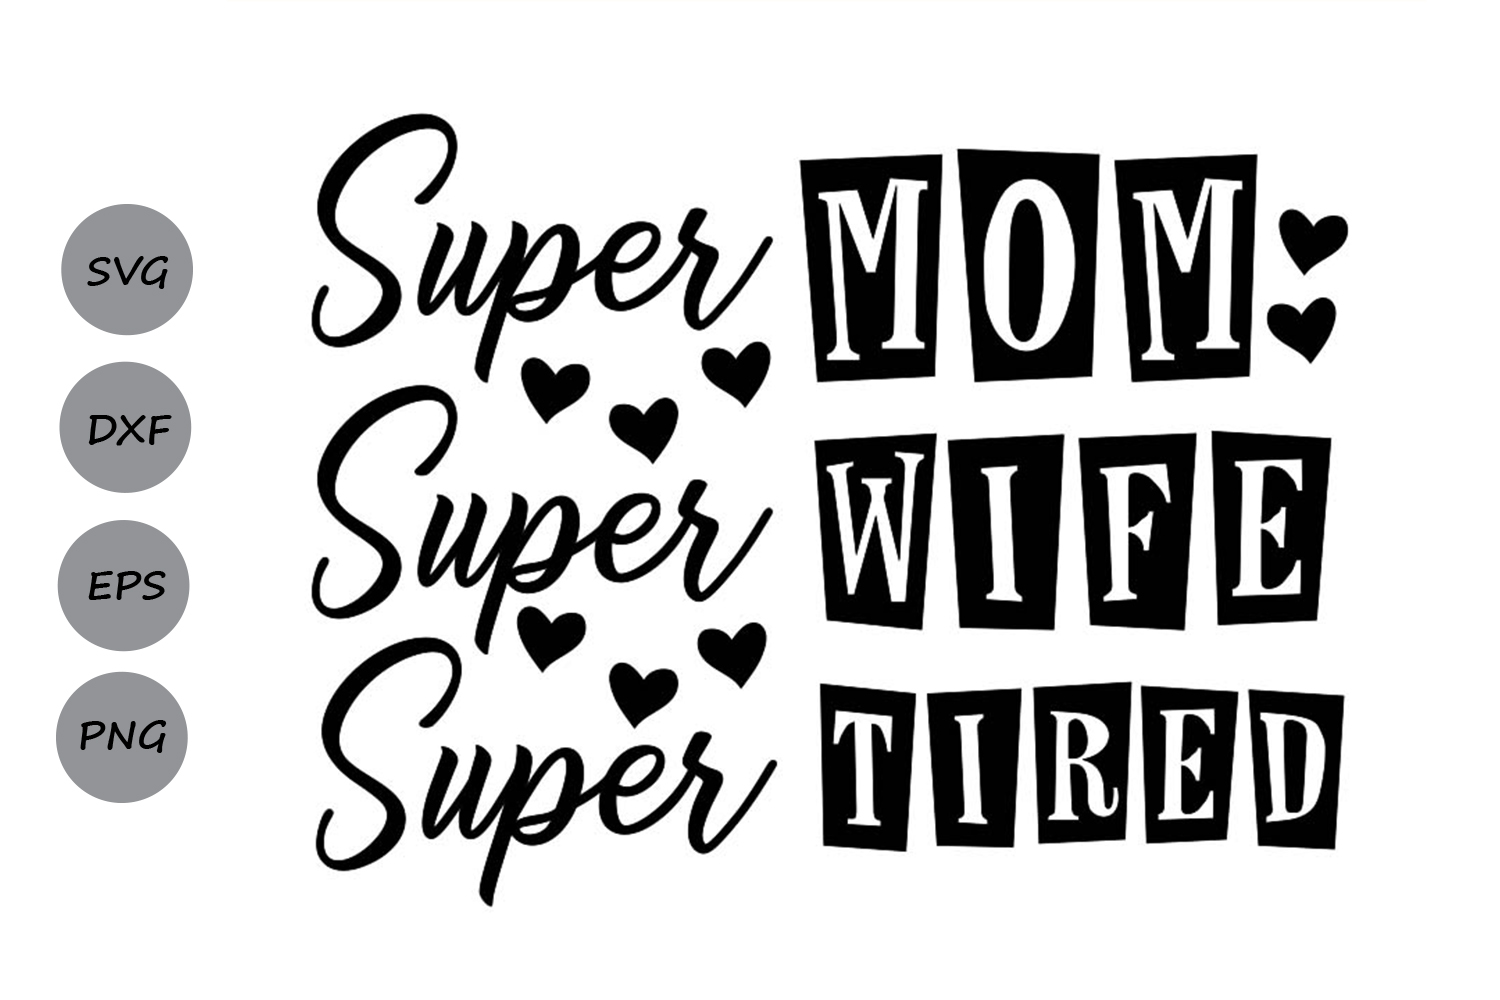 Download Free Super Mom Super Wife Super Tired Svg Graphic By Cosmosfineart for Cricut Explore, Silhouette and other cutting machines.